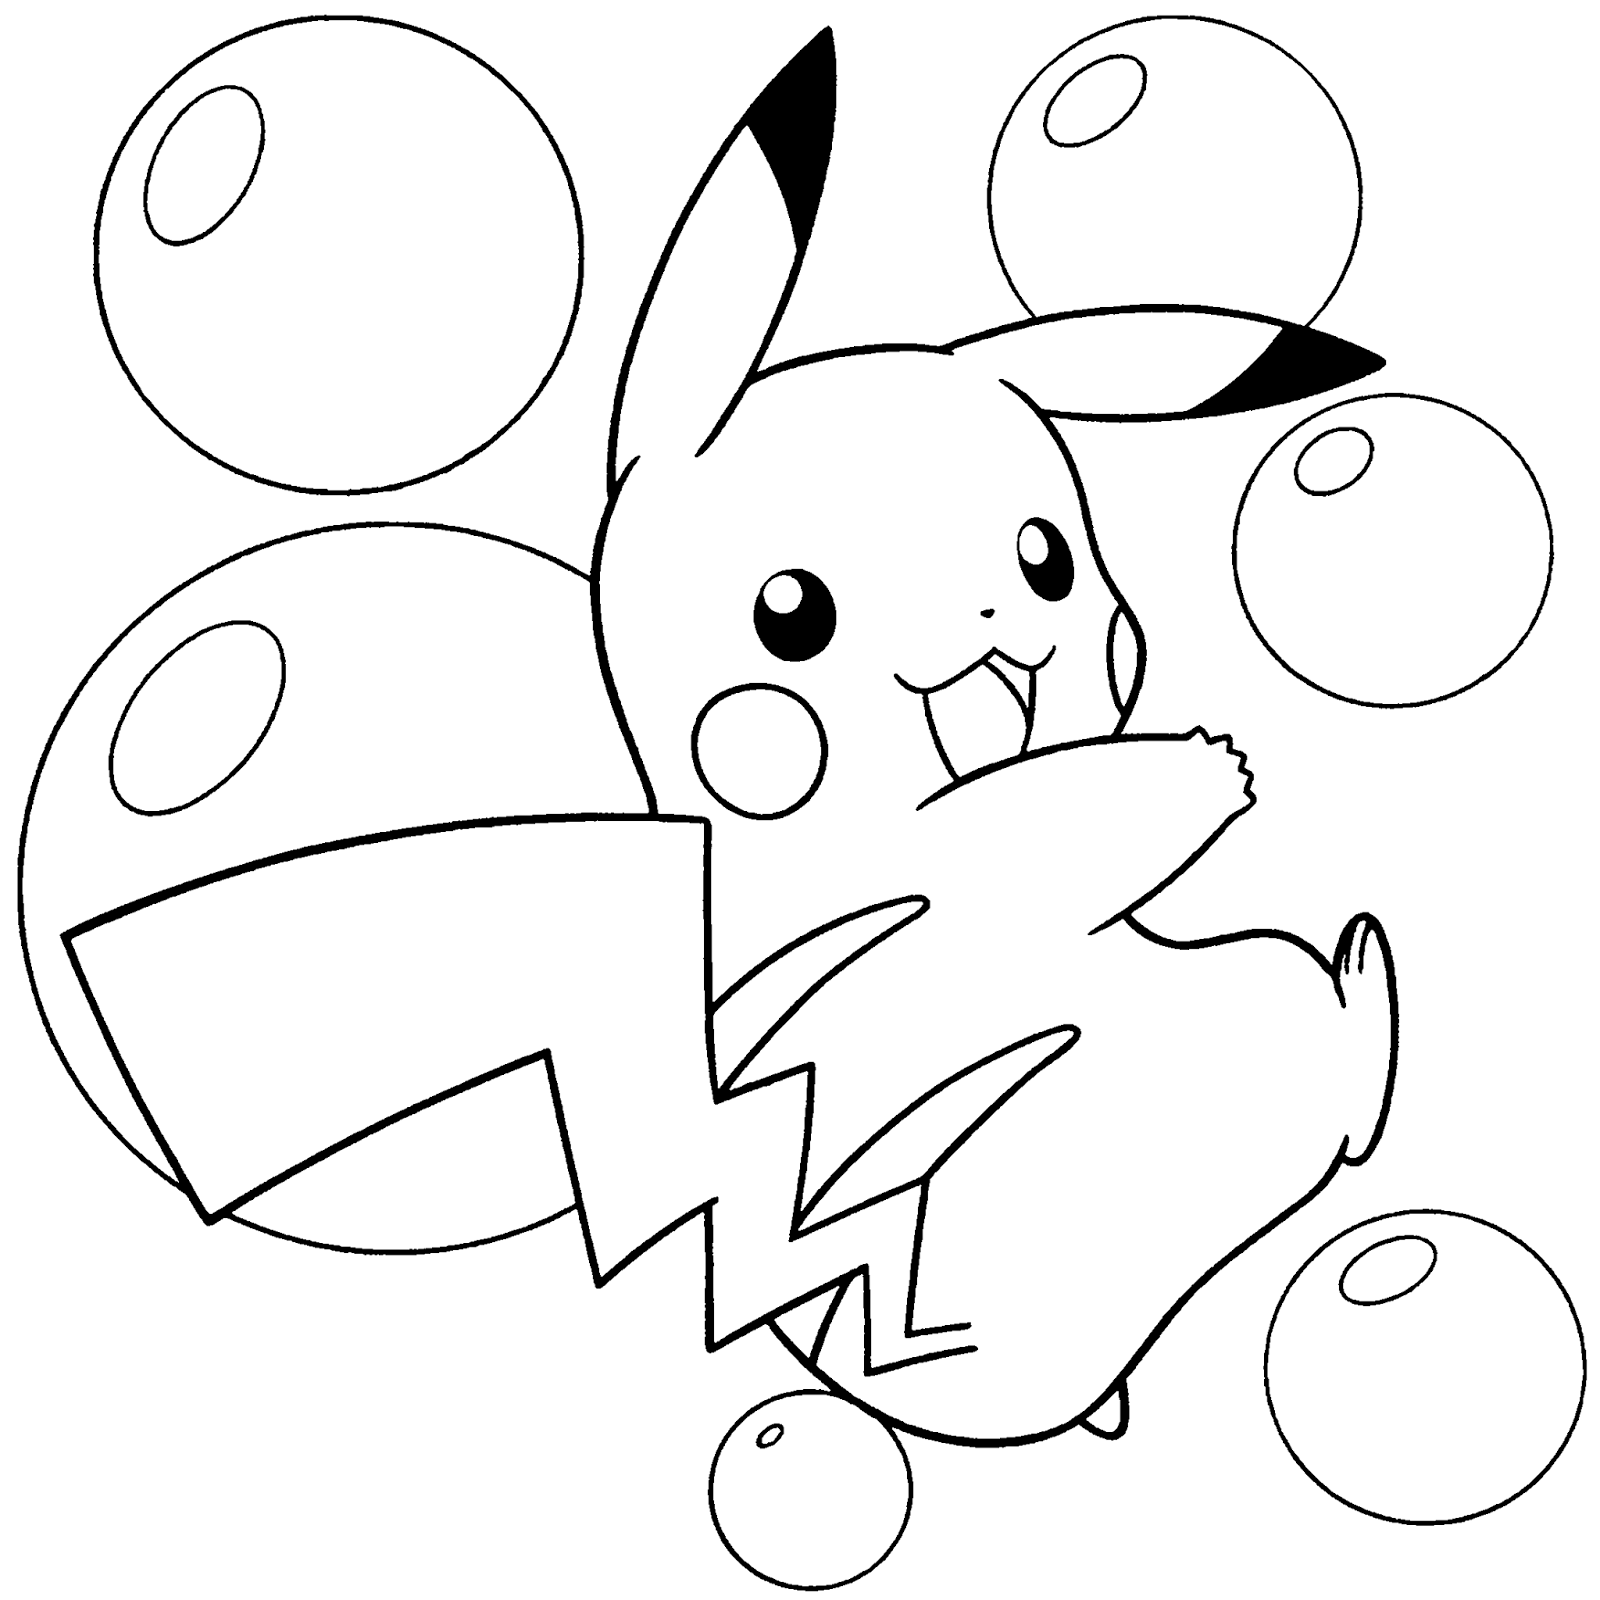 free coloring pokemon pages coloring pages pokemon coloring pages free and printable free pages coloring pokemon